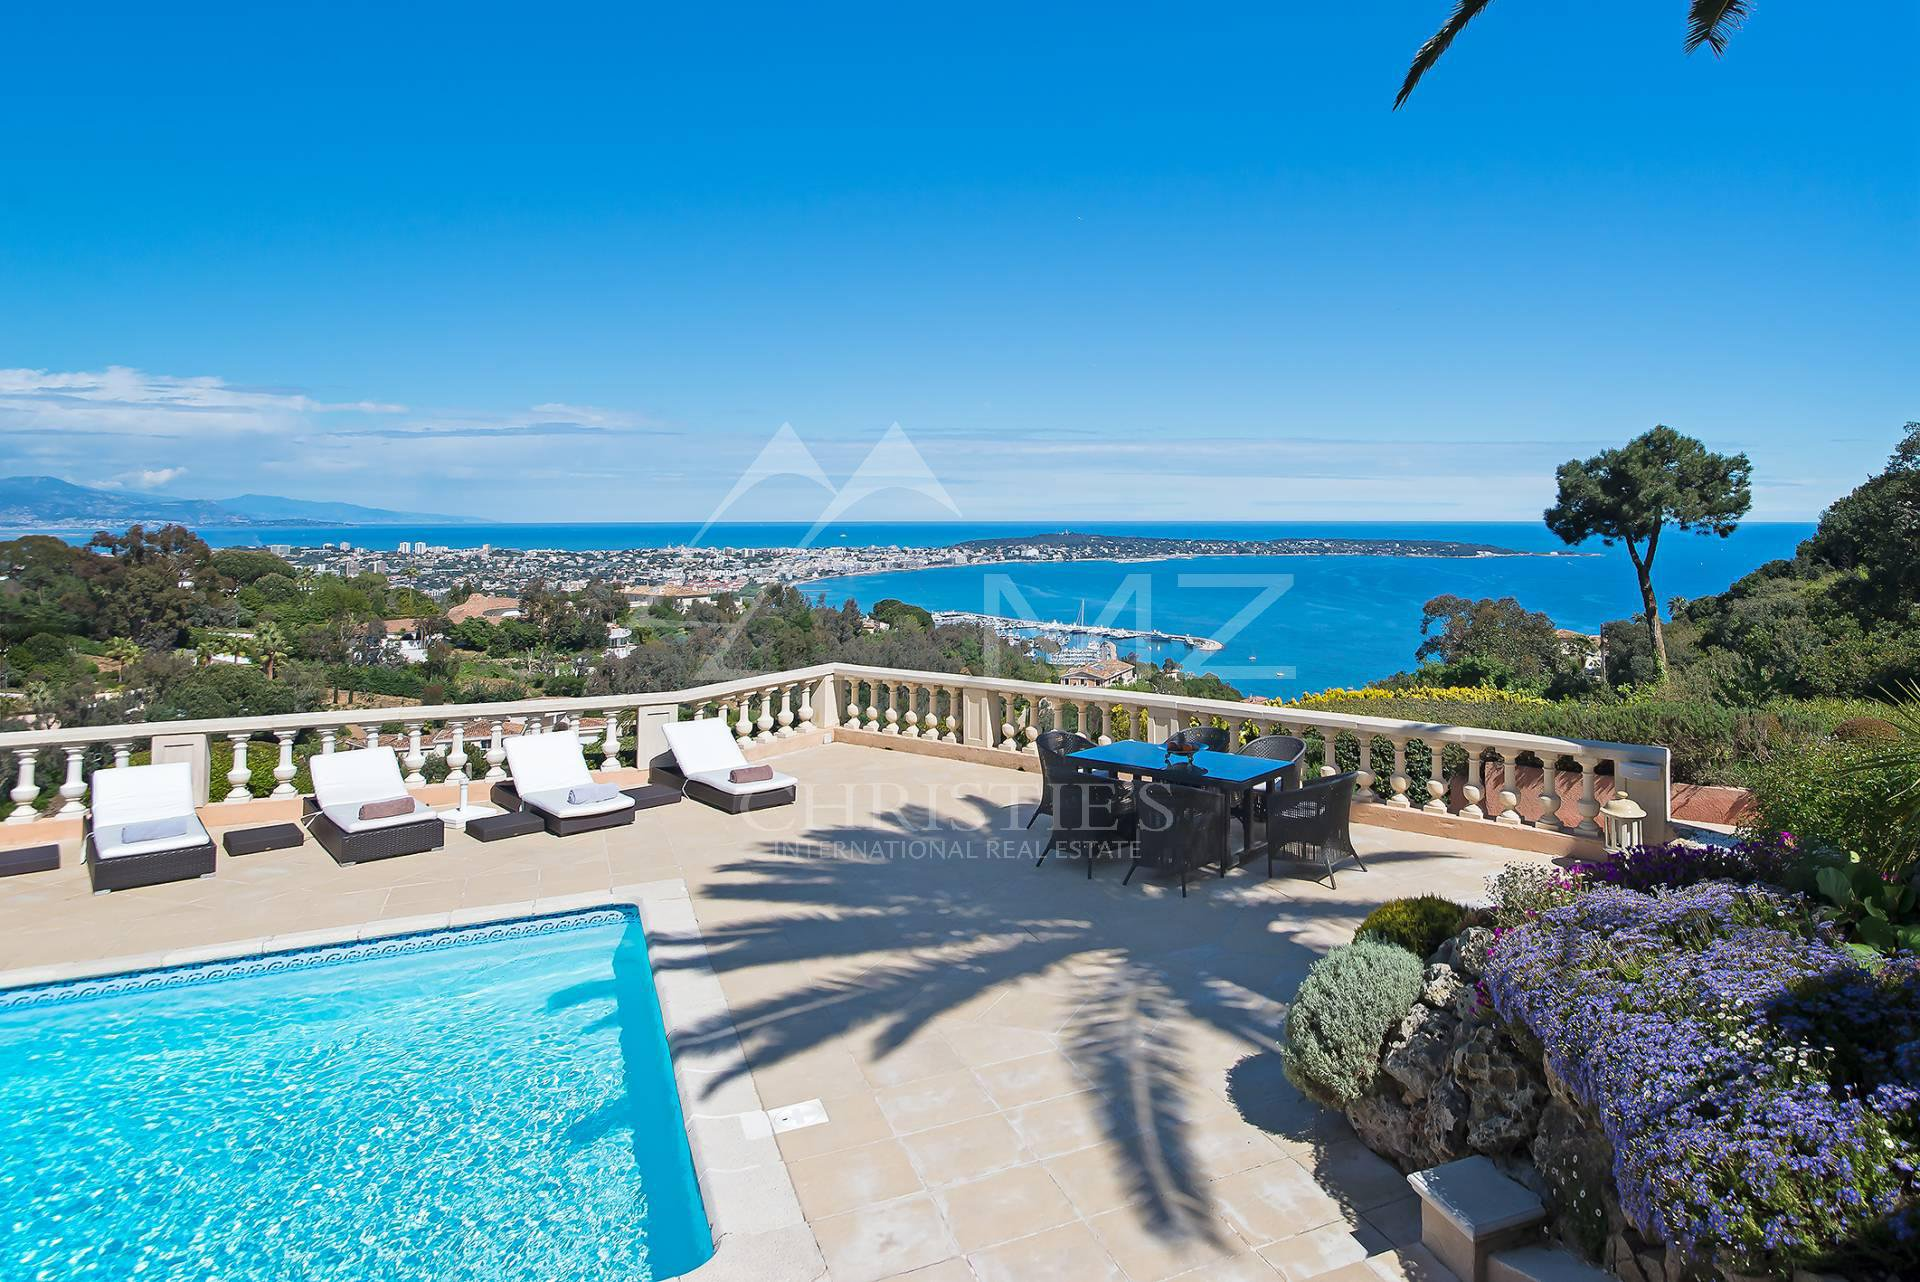 Villa/Townhouse for Rent at Super Cannes - Astonishing sea view Vallauris, Alpes-Maritimes,06220 France